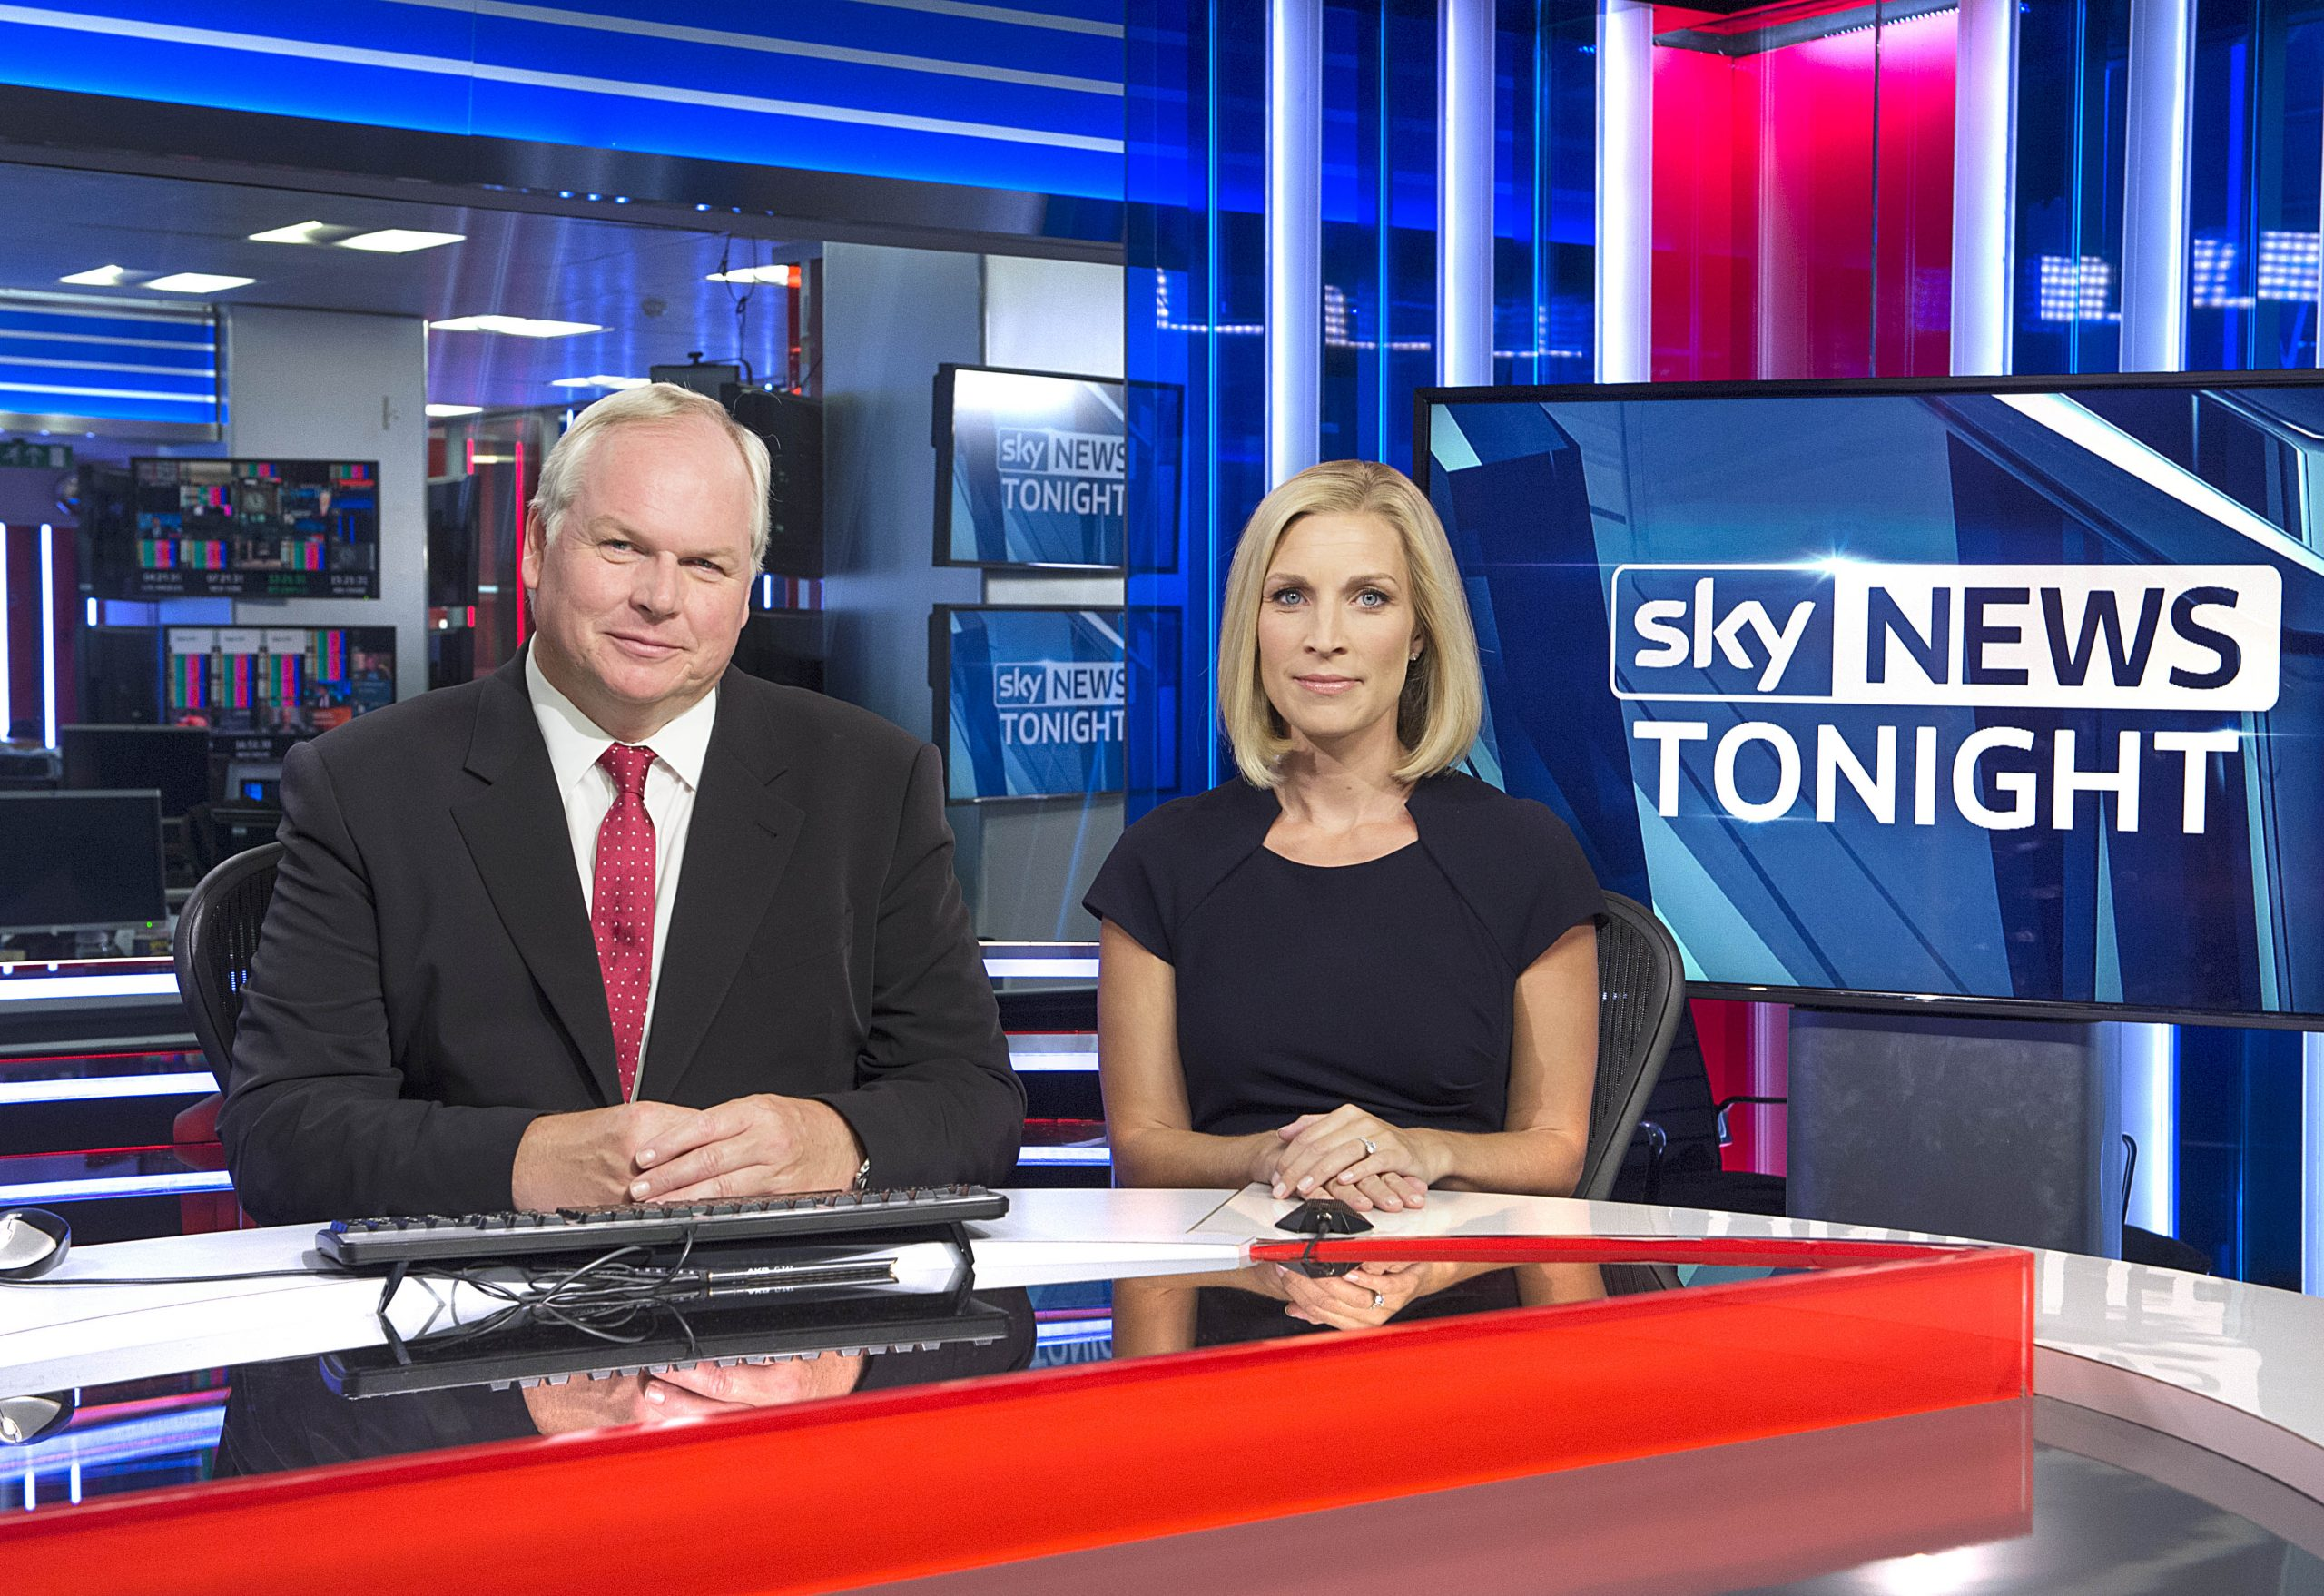 Sky News' Sarah Hewson gives birth to baby boy Oliver!